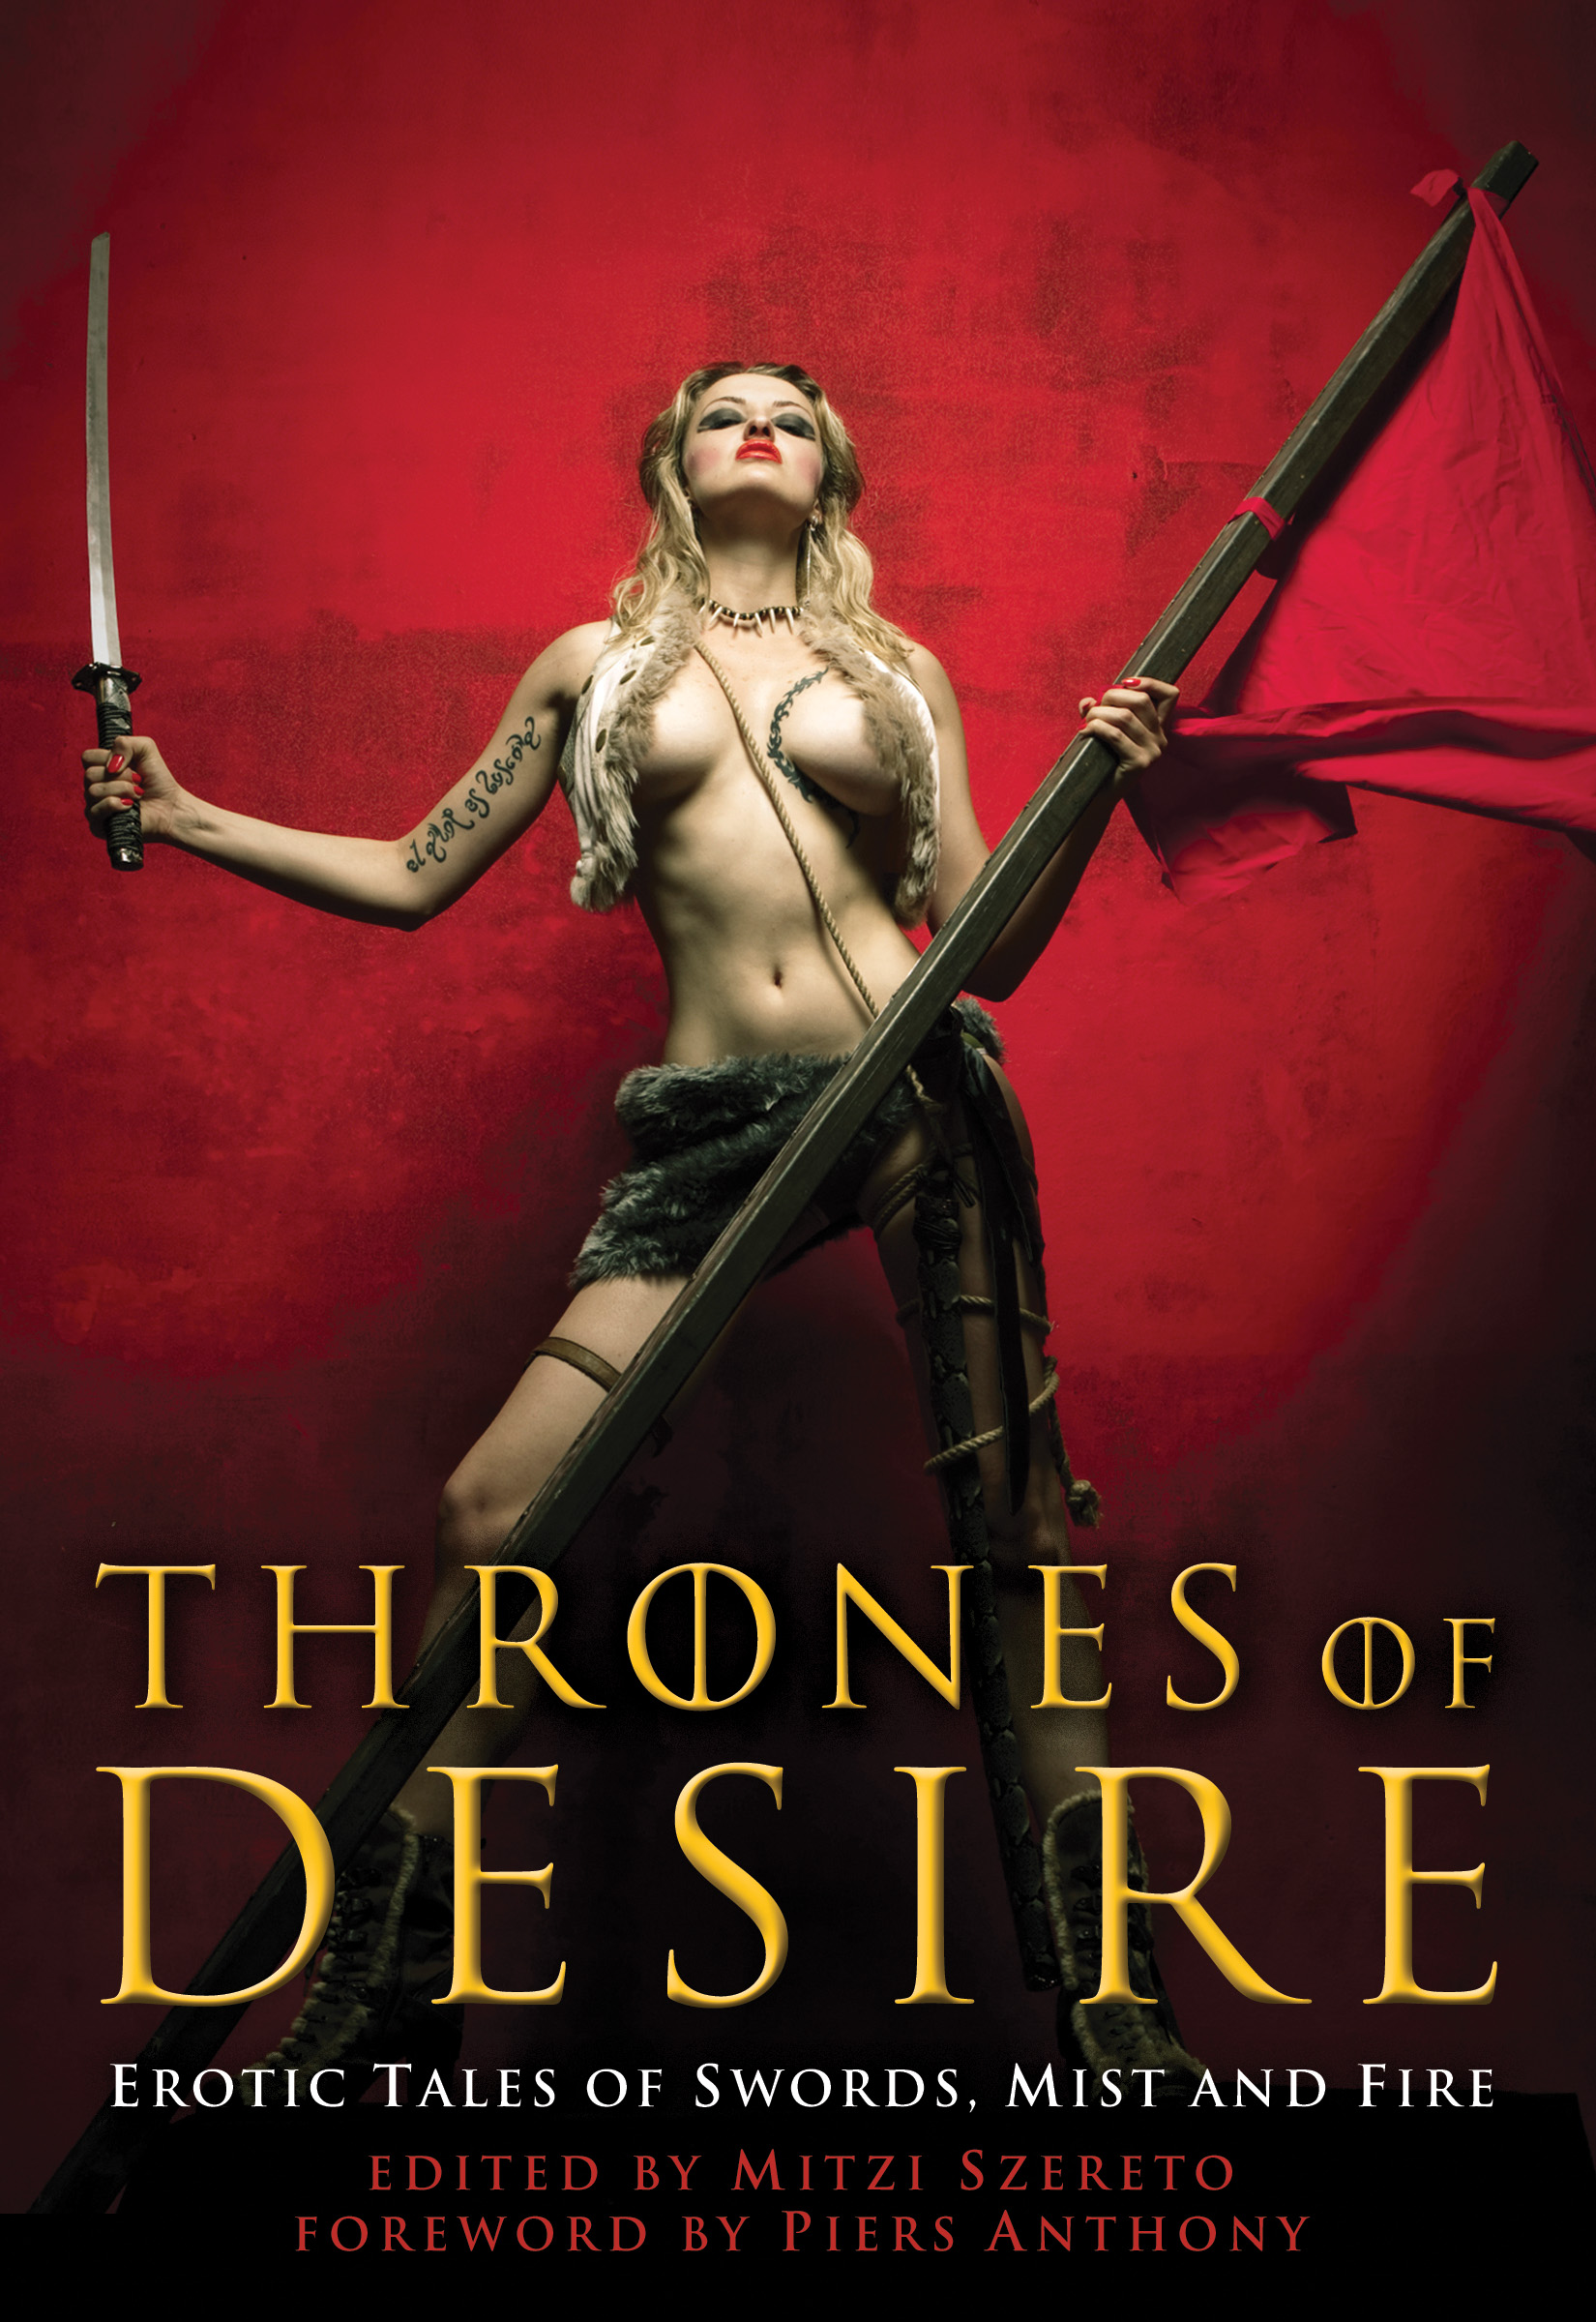 Thrones of Desire